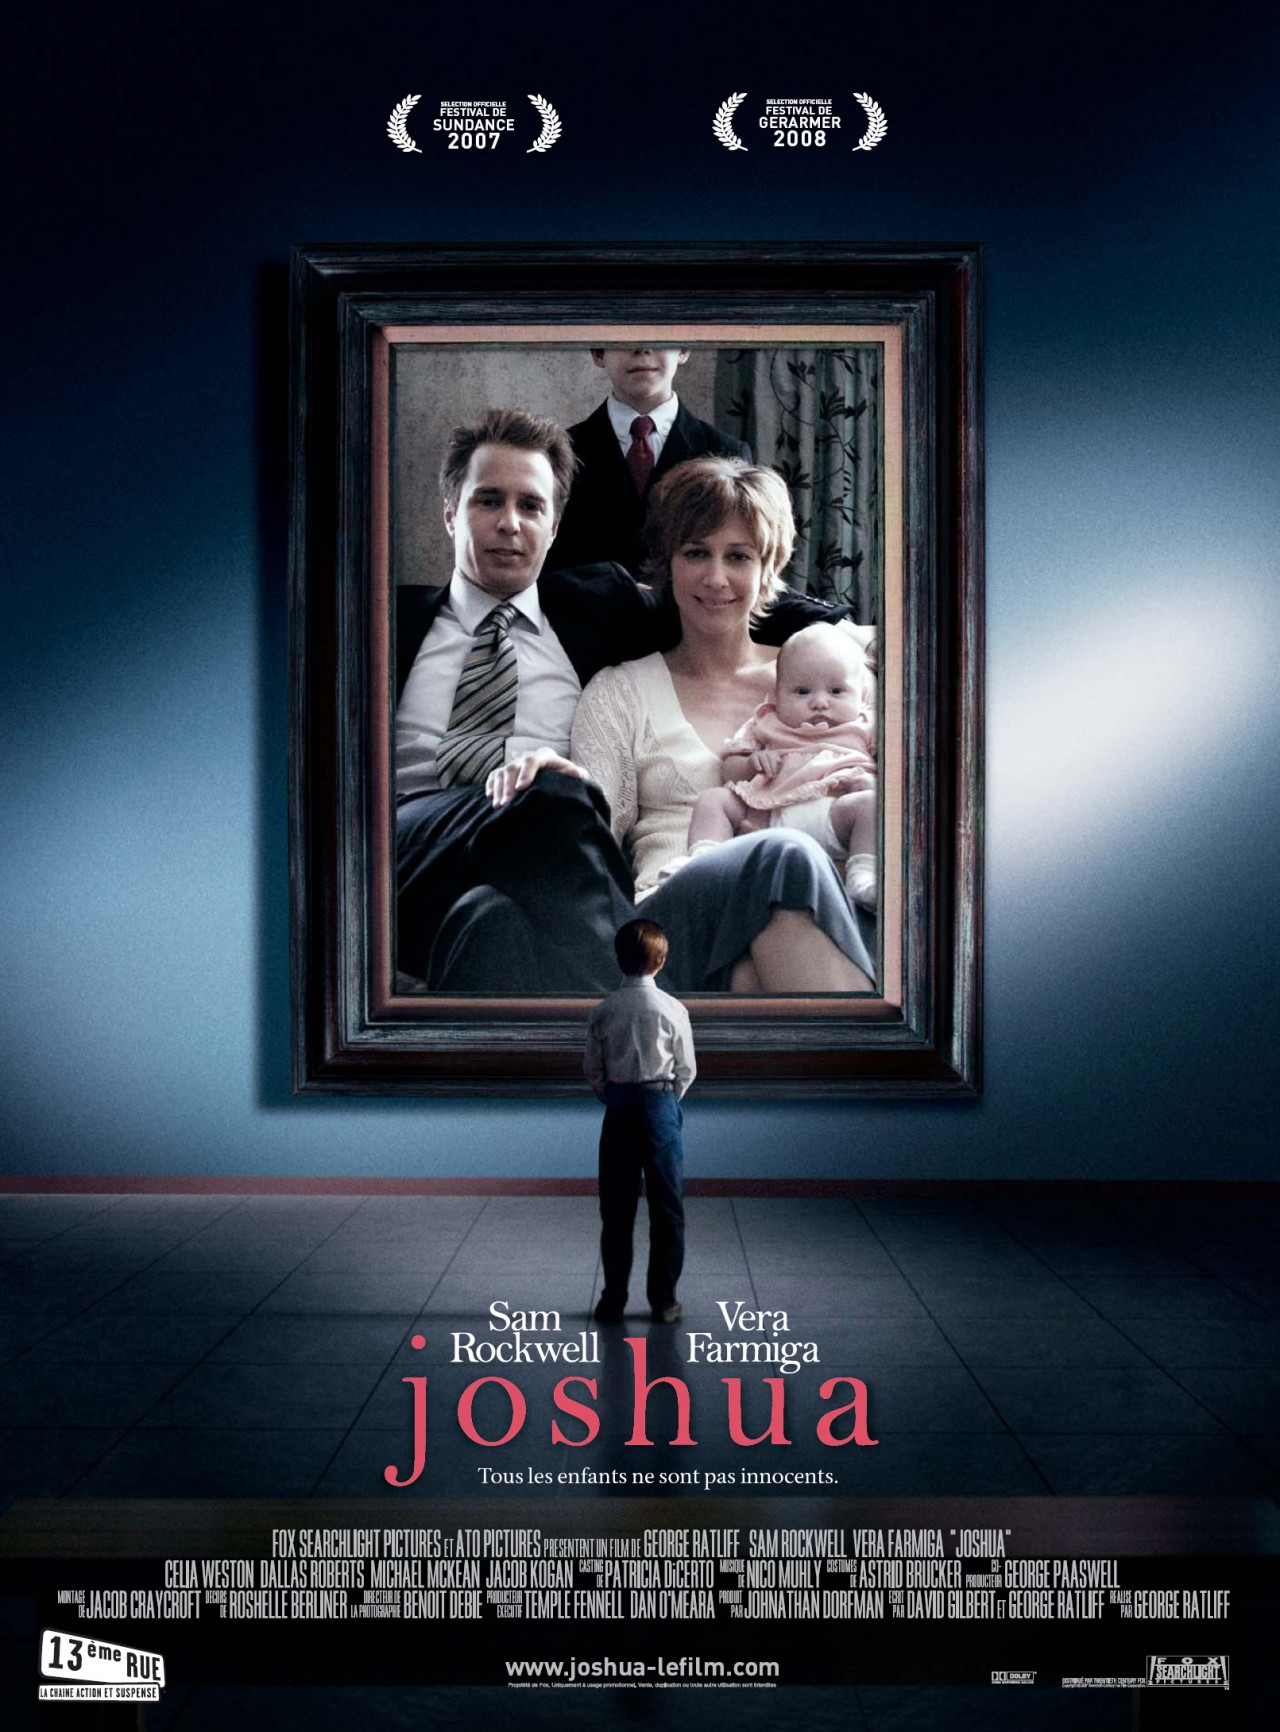 [RG] Joshua [FRENCH][DVDRIP]